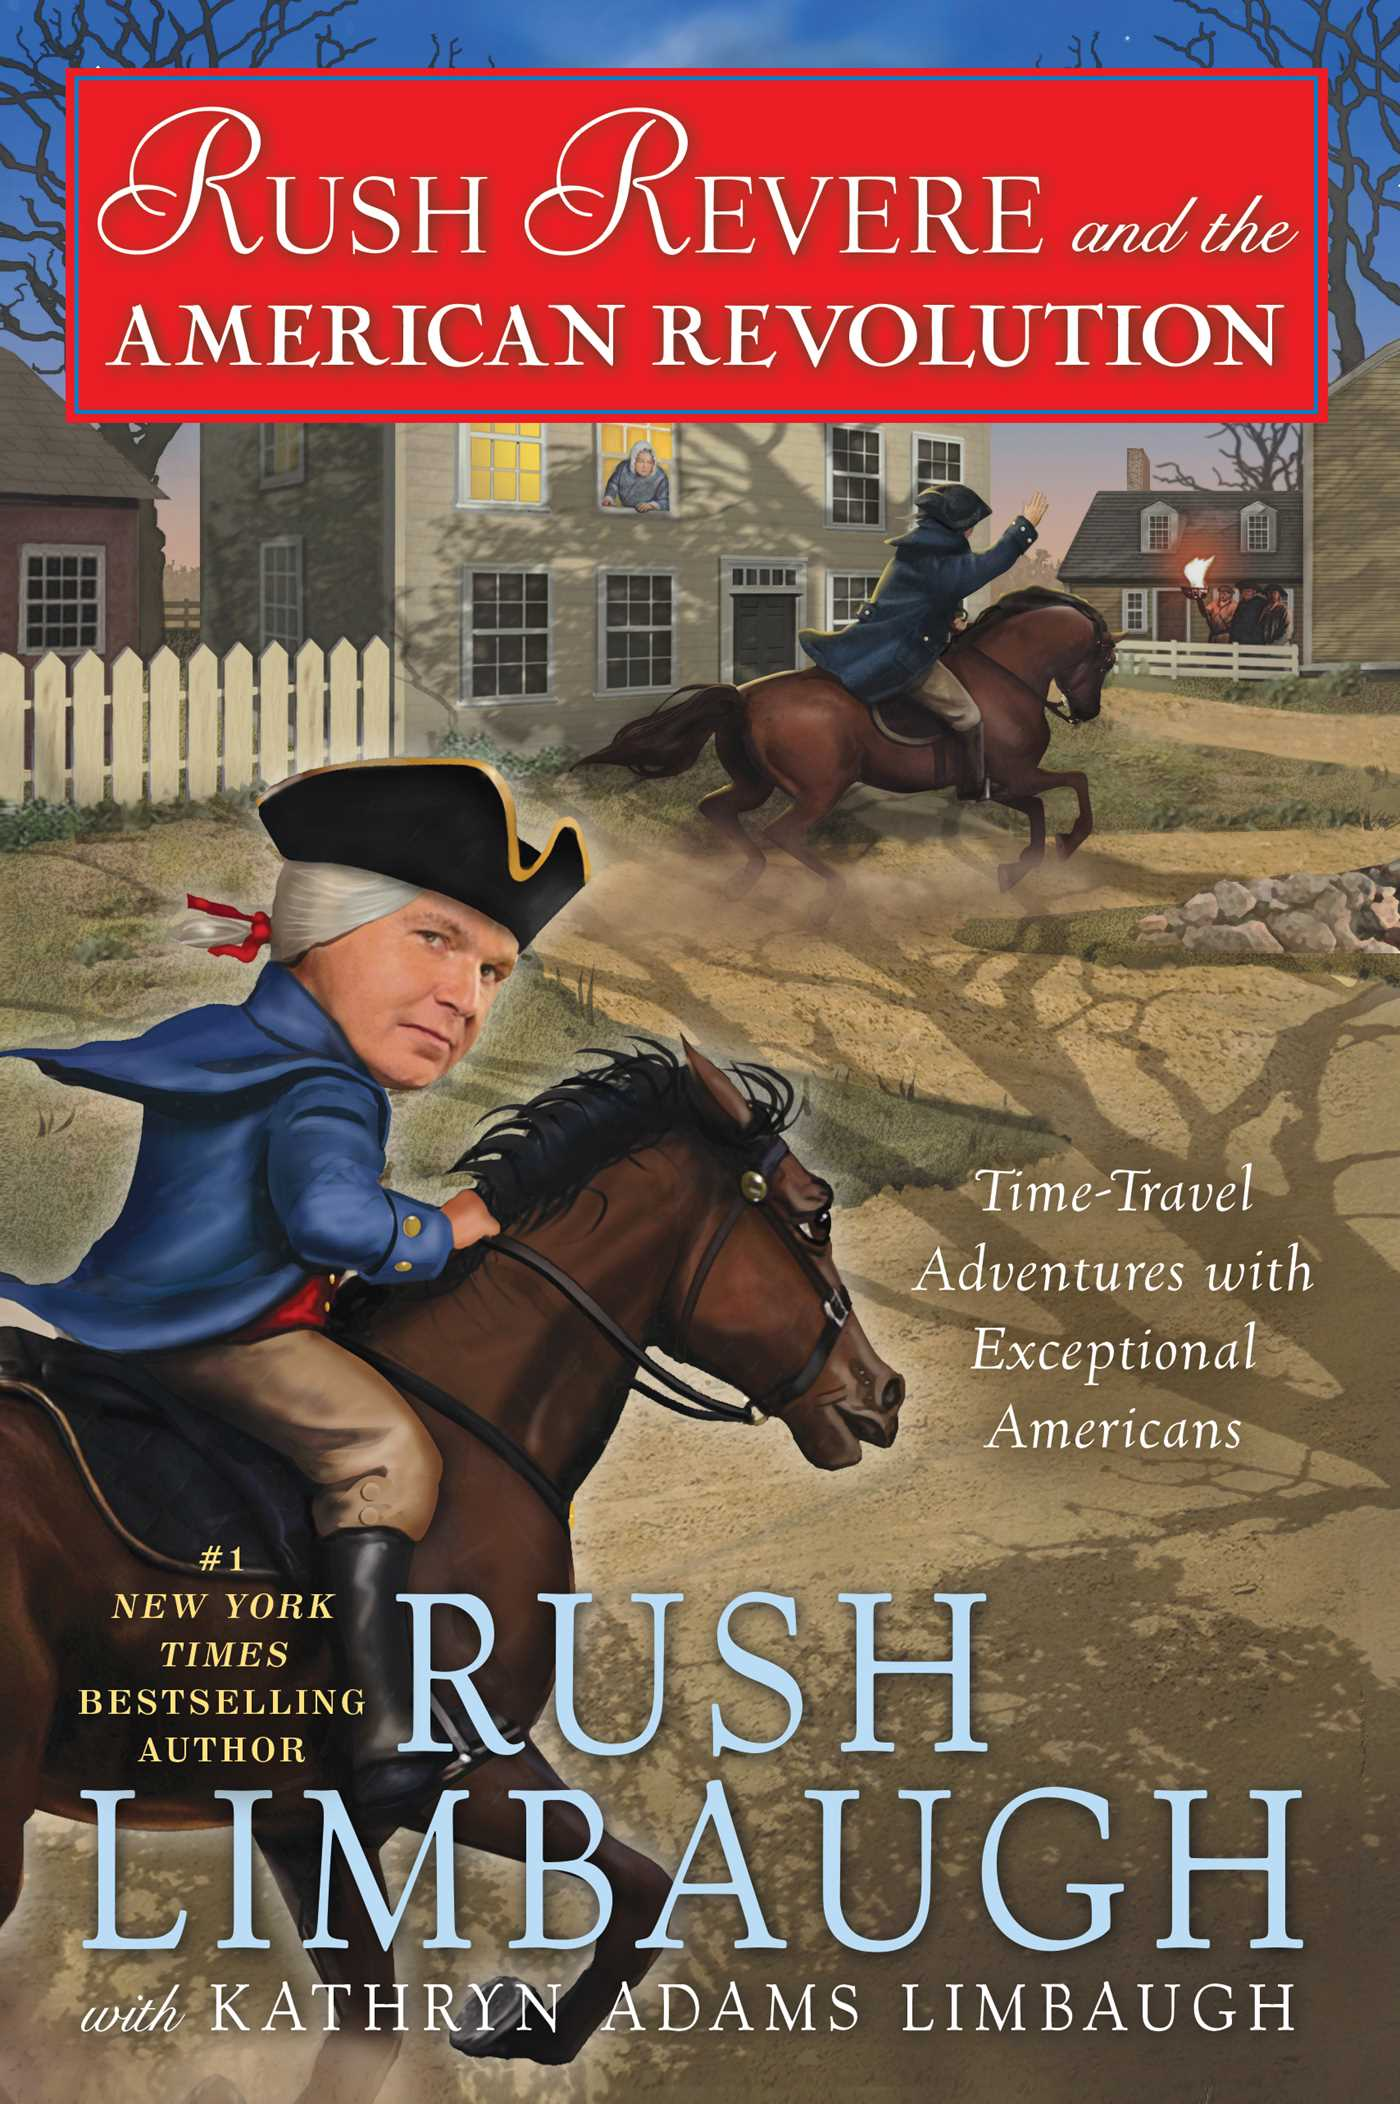 Rush revere and the american revolution 9781476789910 hr